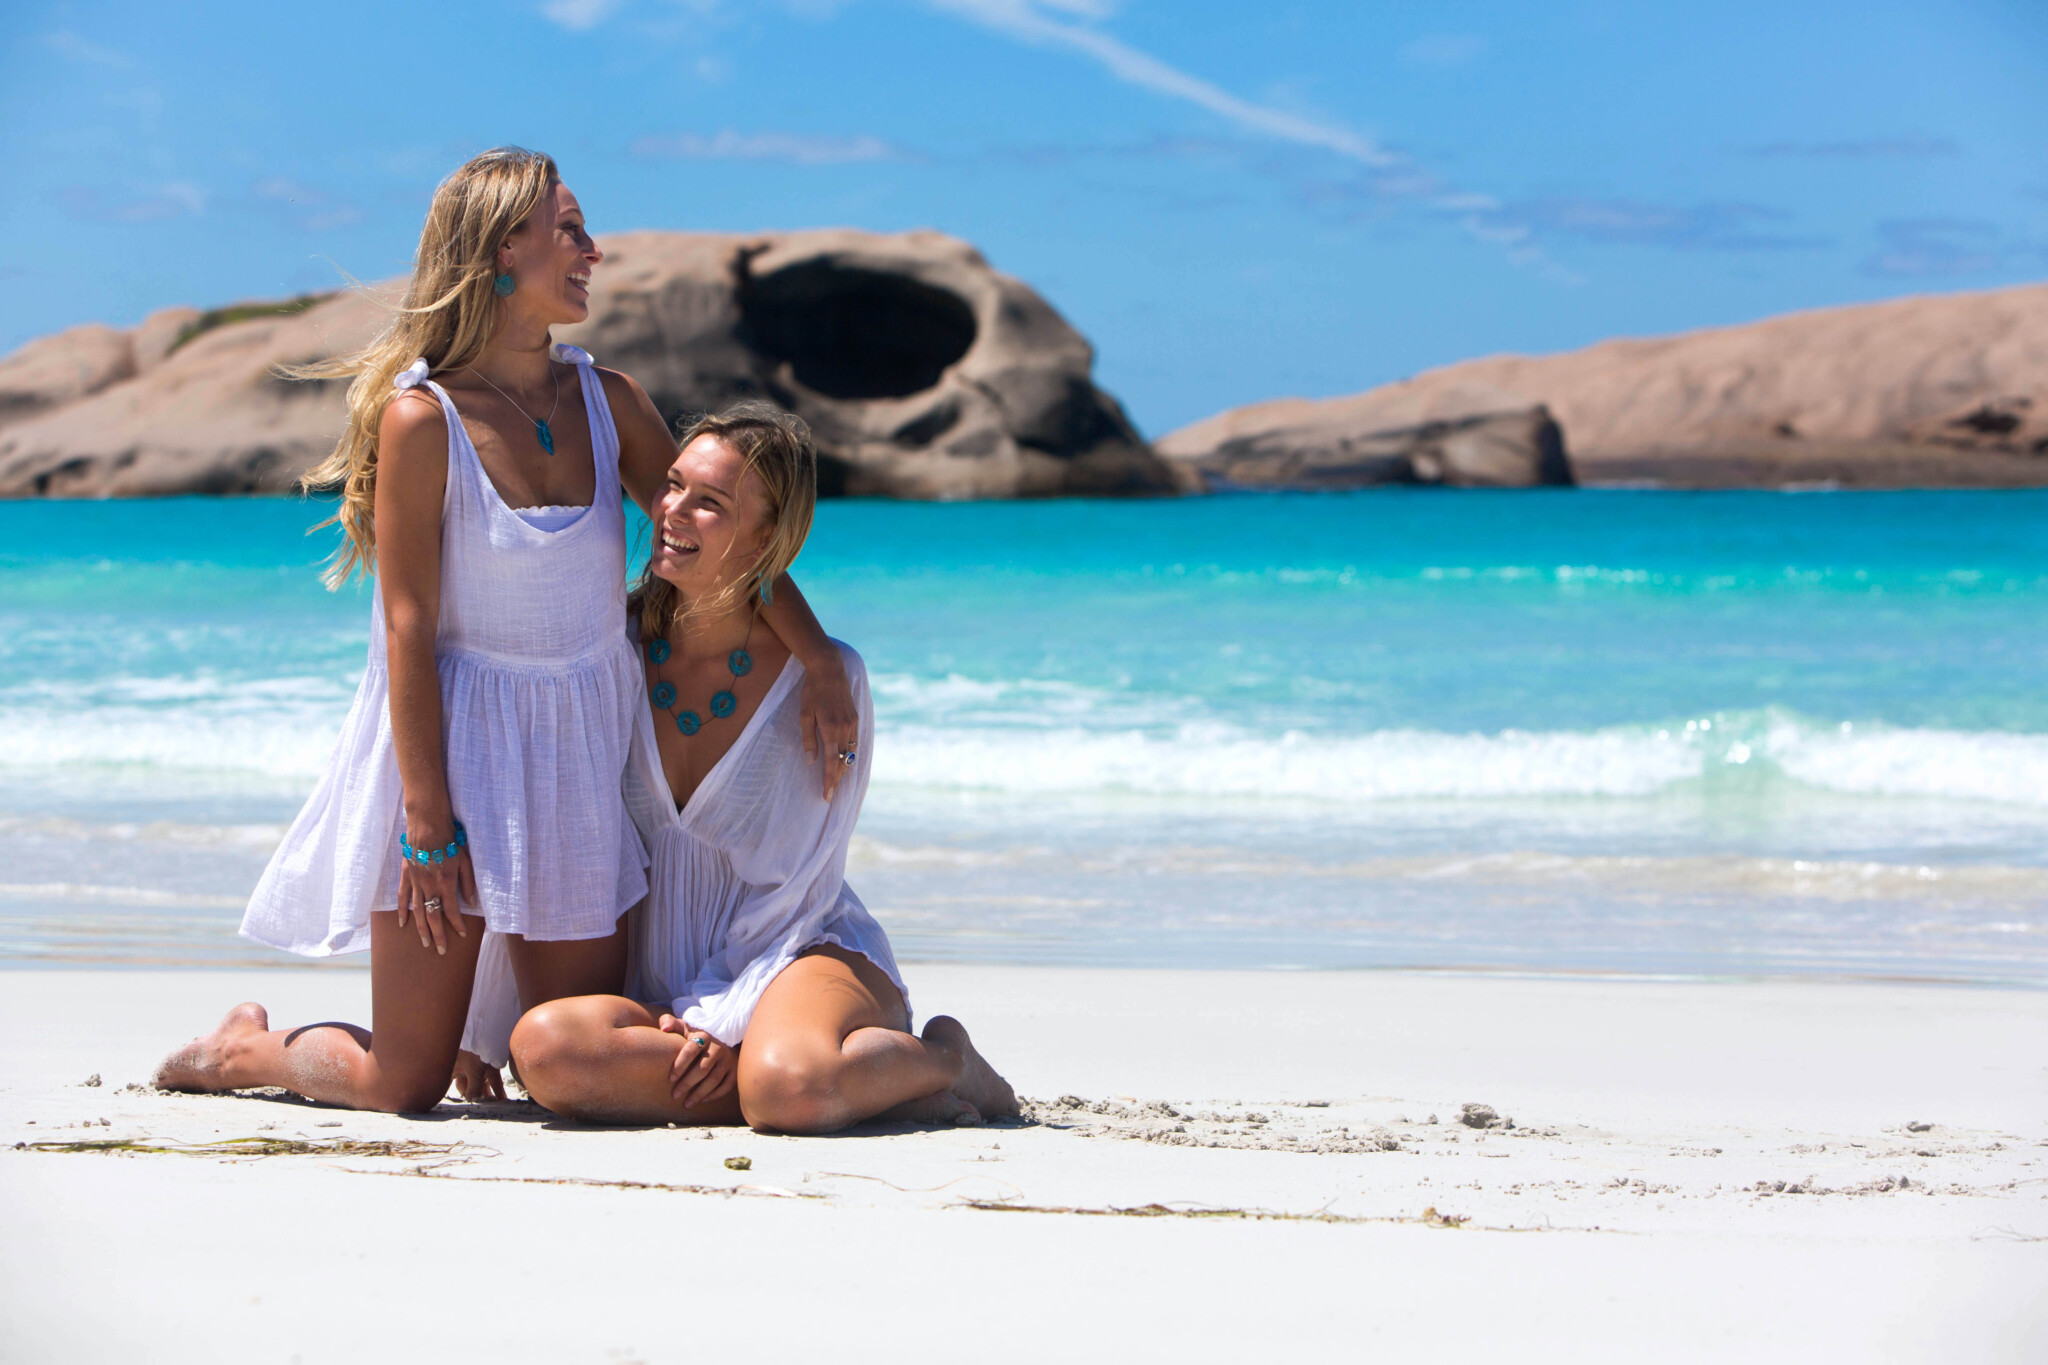 Two models sitting on the sand at the beach